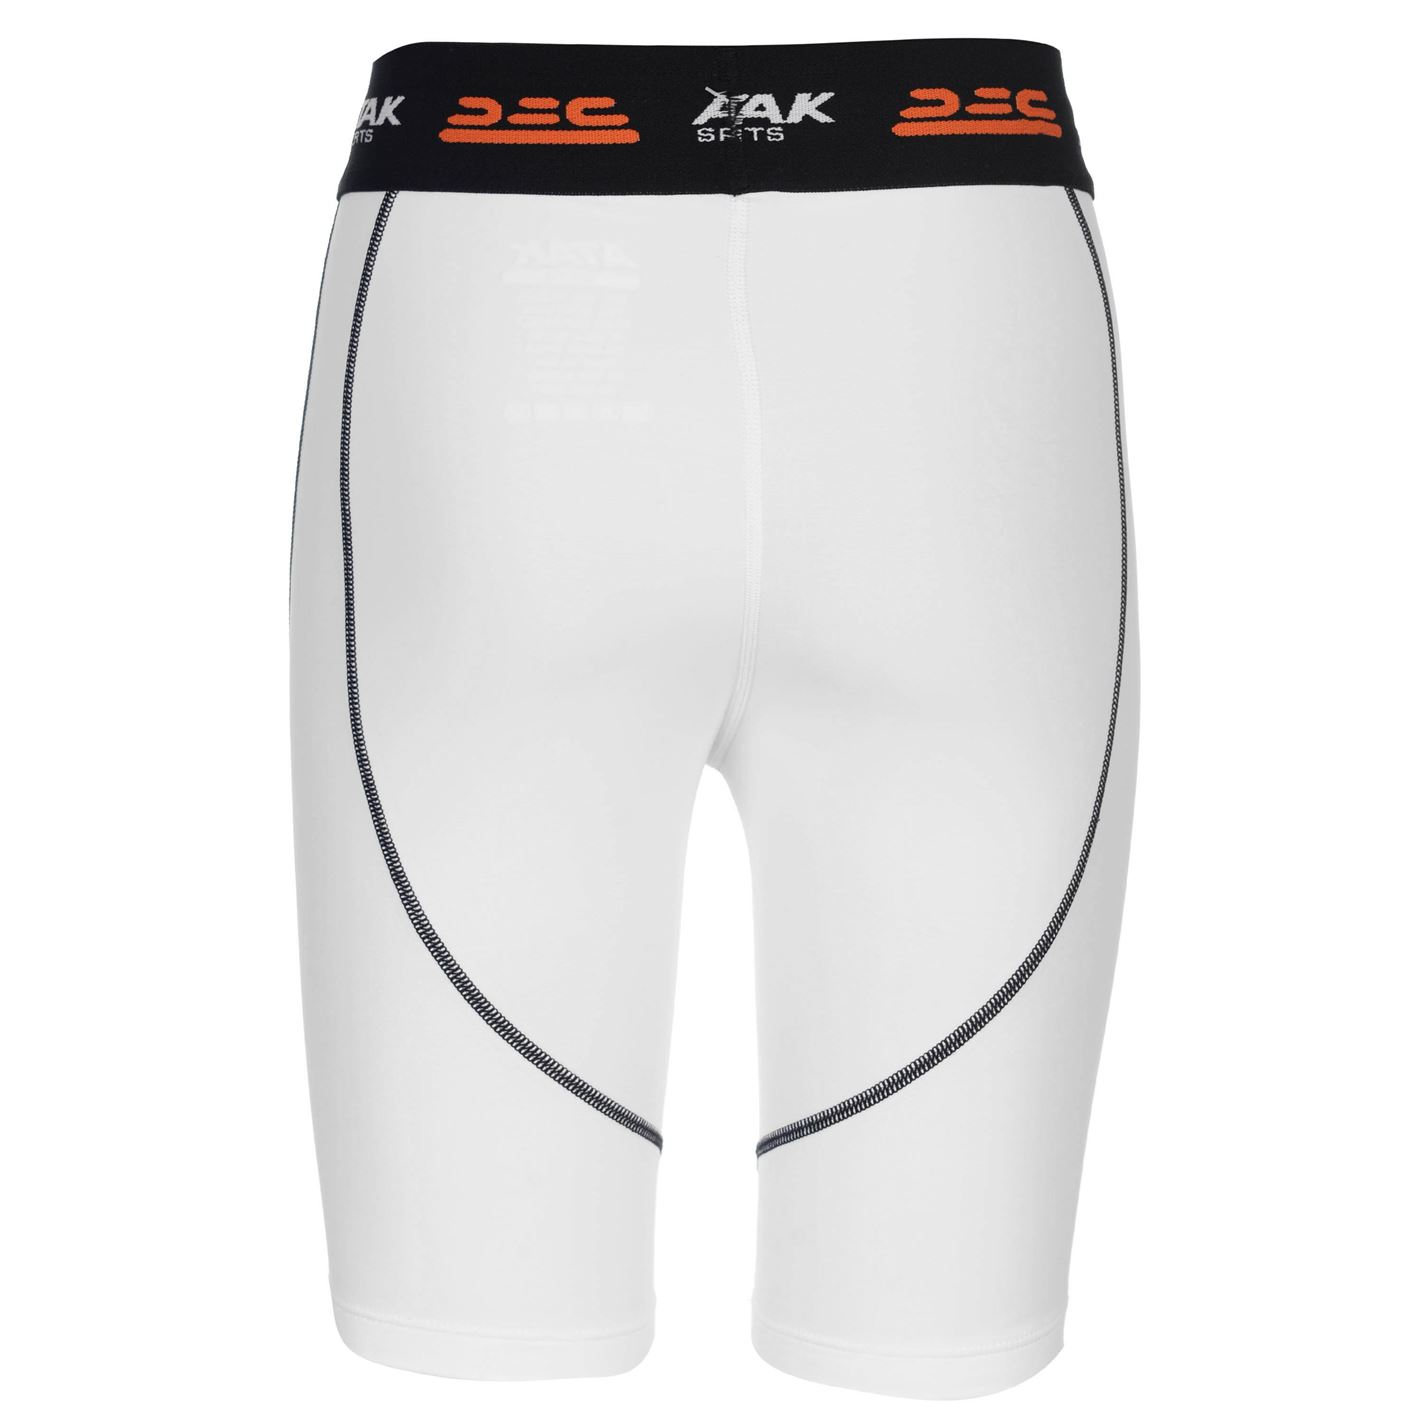 c86cf6419b Atak Kids Boys Gaelic Compression Shorts Junior Baselayer Bottoms ...